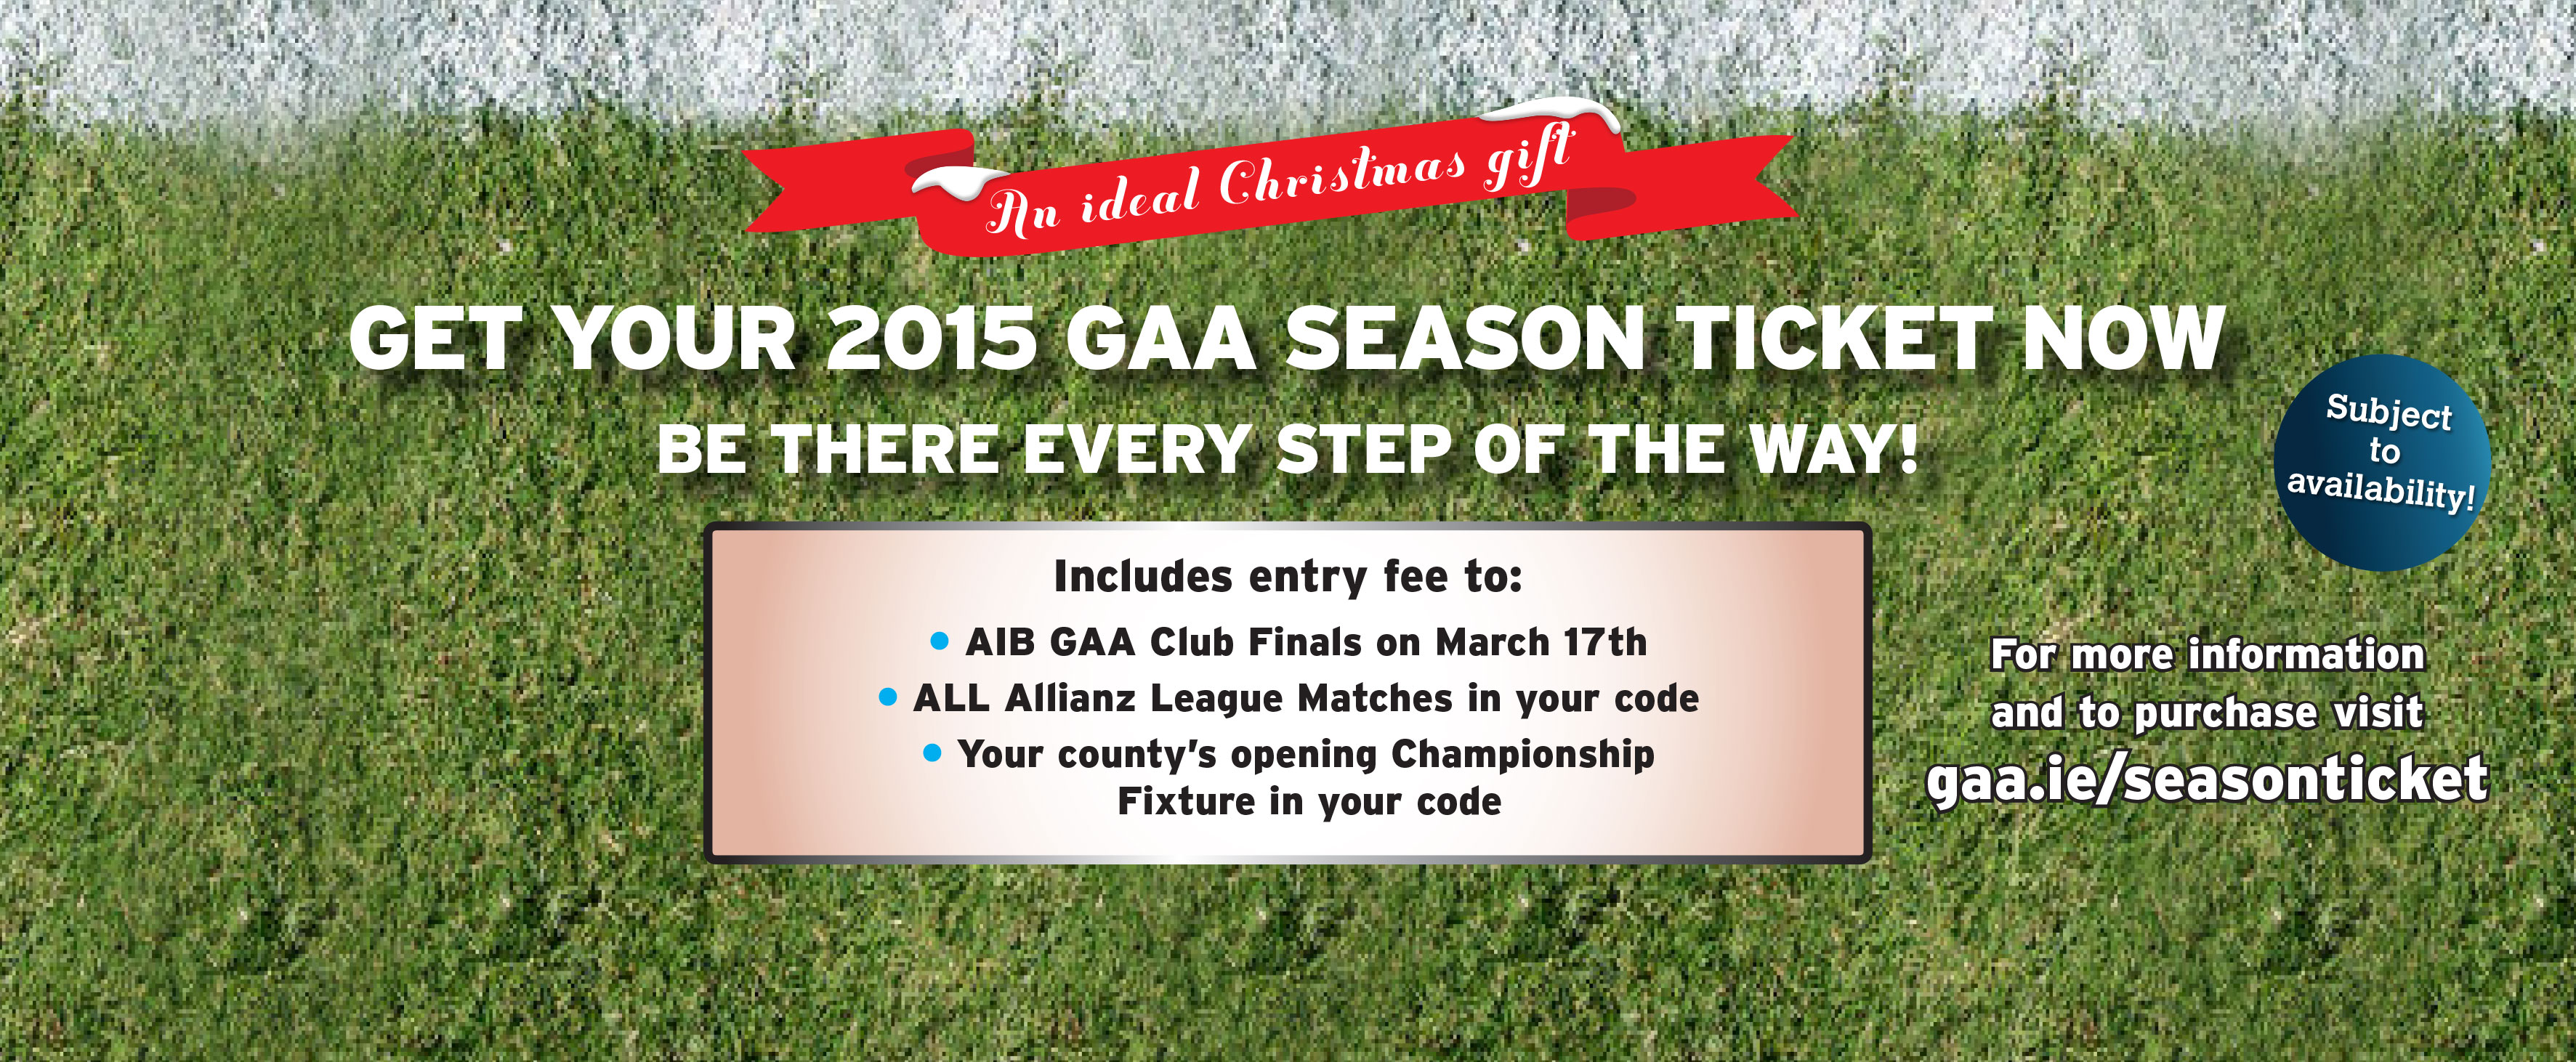 2015 GAA Season Ticket